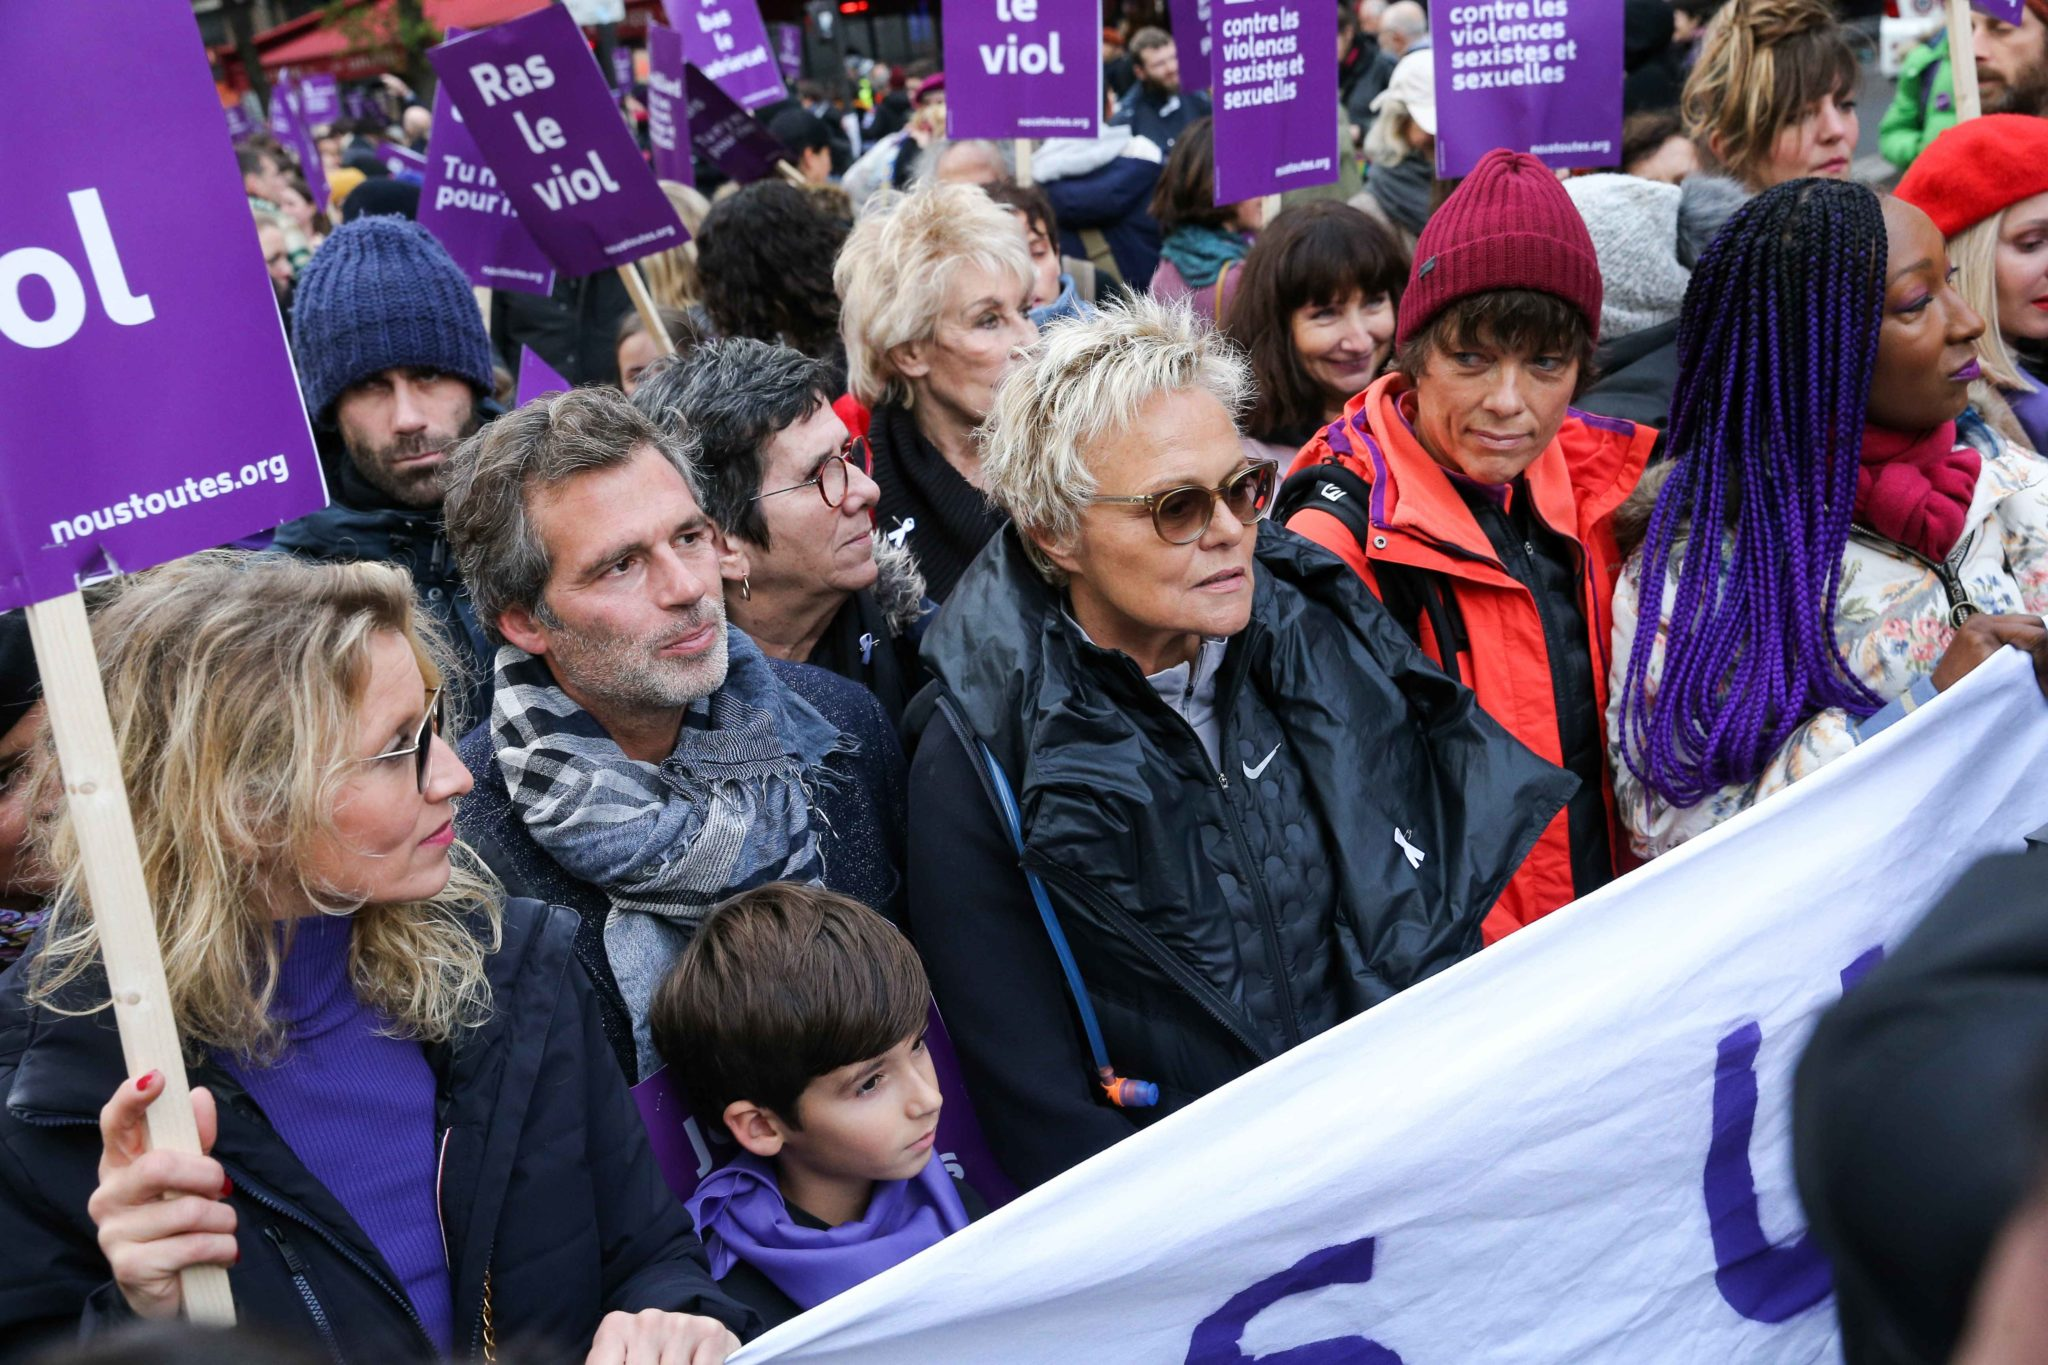 French actress Alexandra Lamy (1L) and French humorist and activist Muriel Robin (3R) take part in a protest to condemn violence against women, on November 23, 2019, in Paris. Wearing purple – the adopted colour of feminist struggles – activists are ta